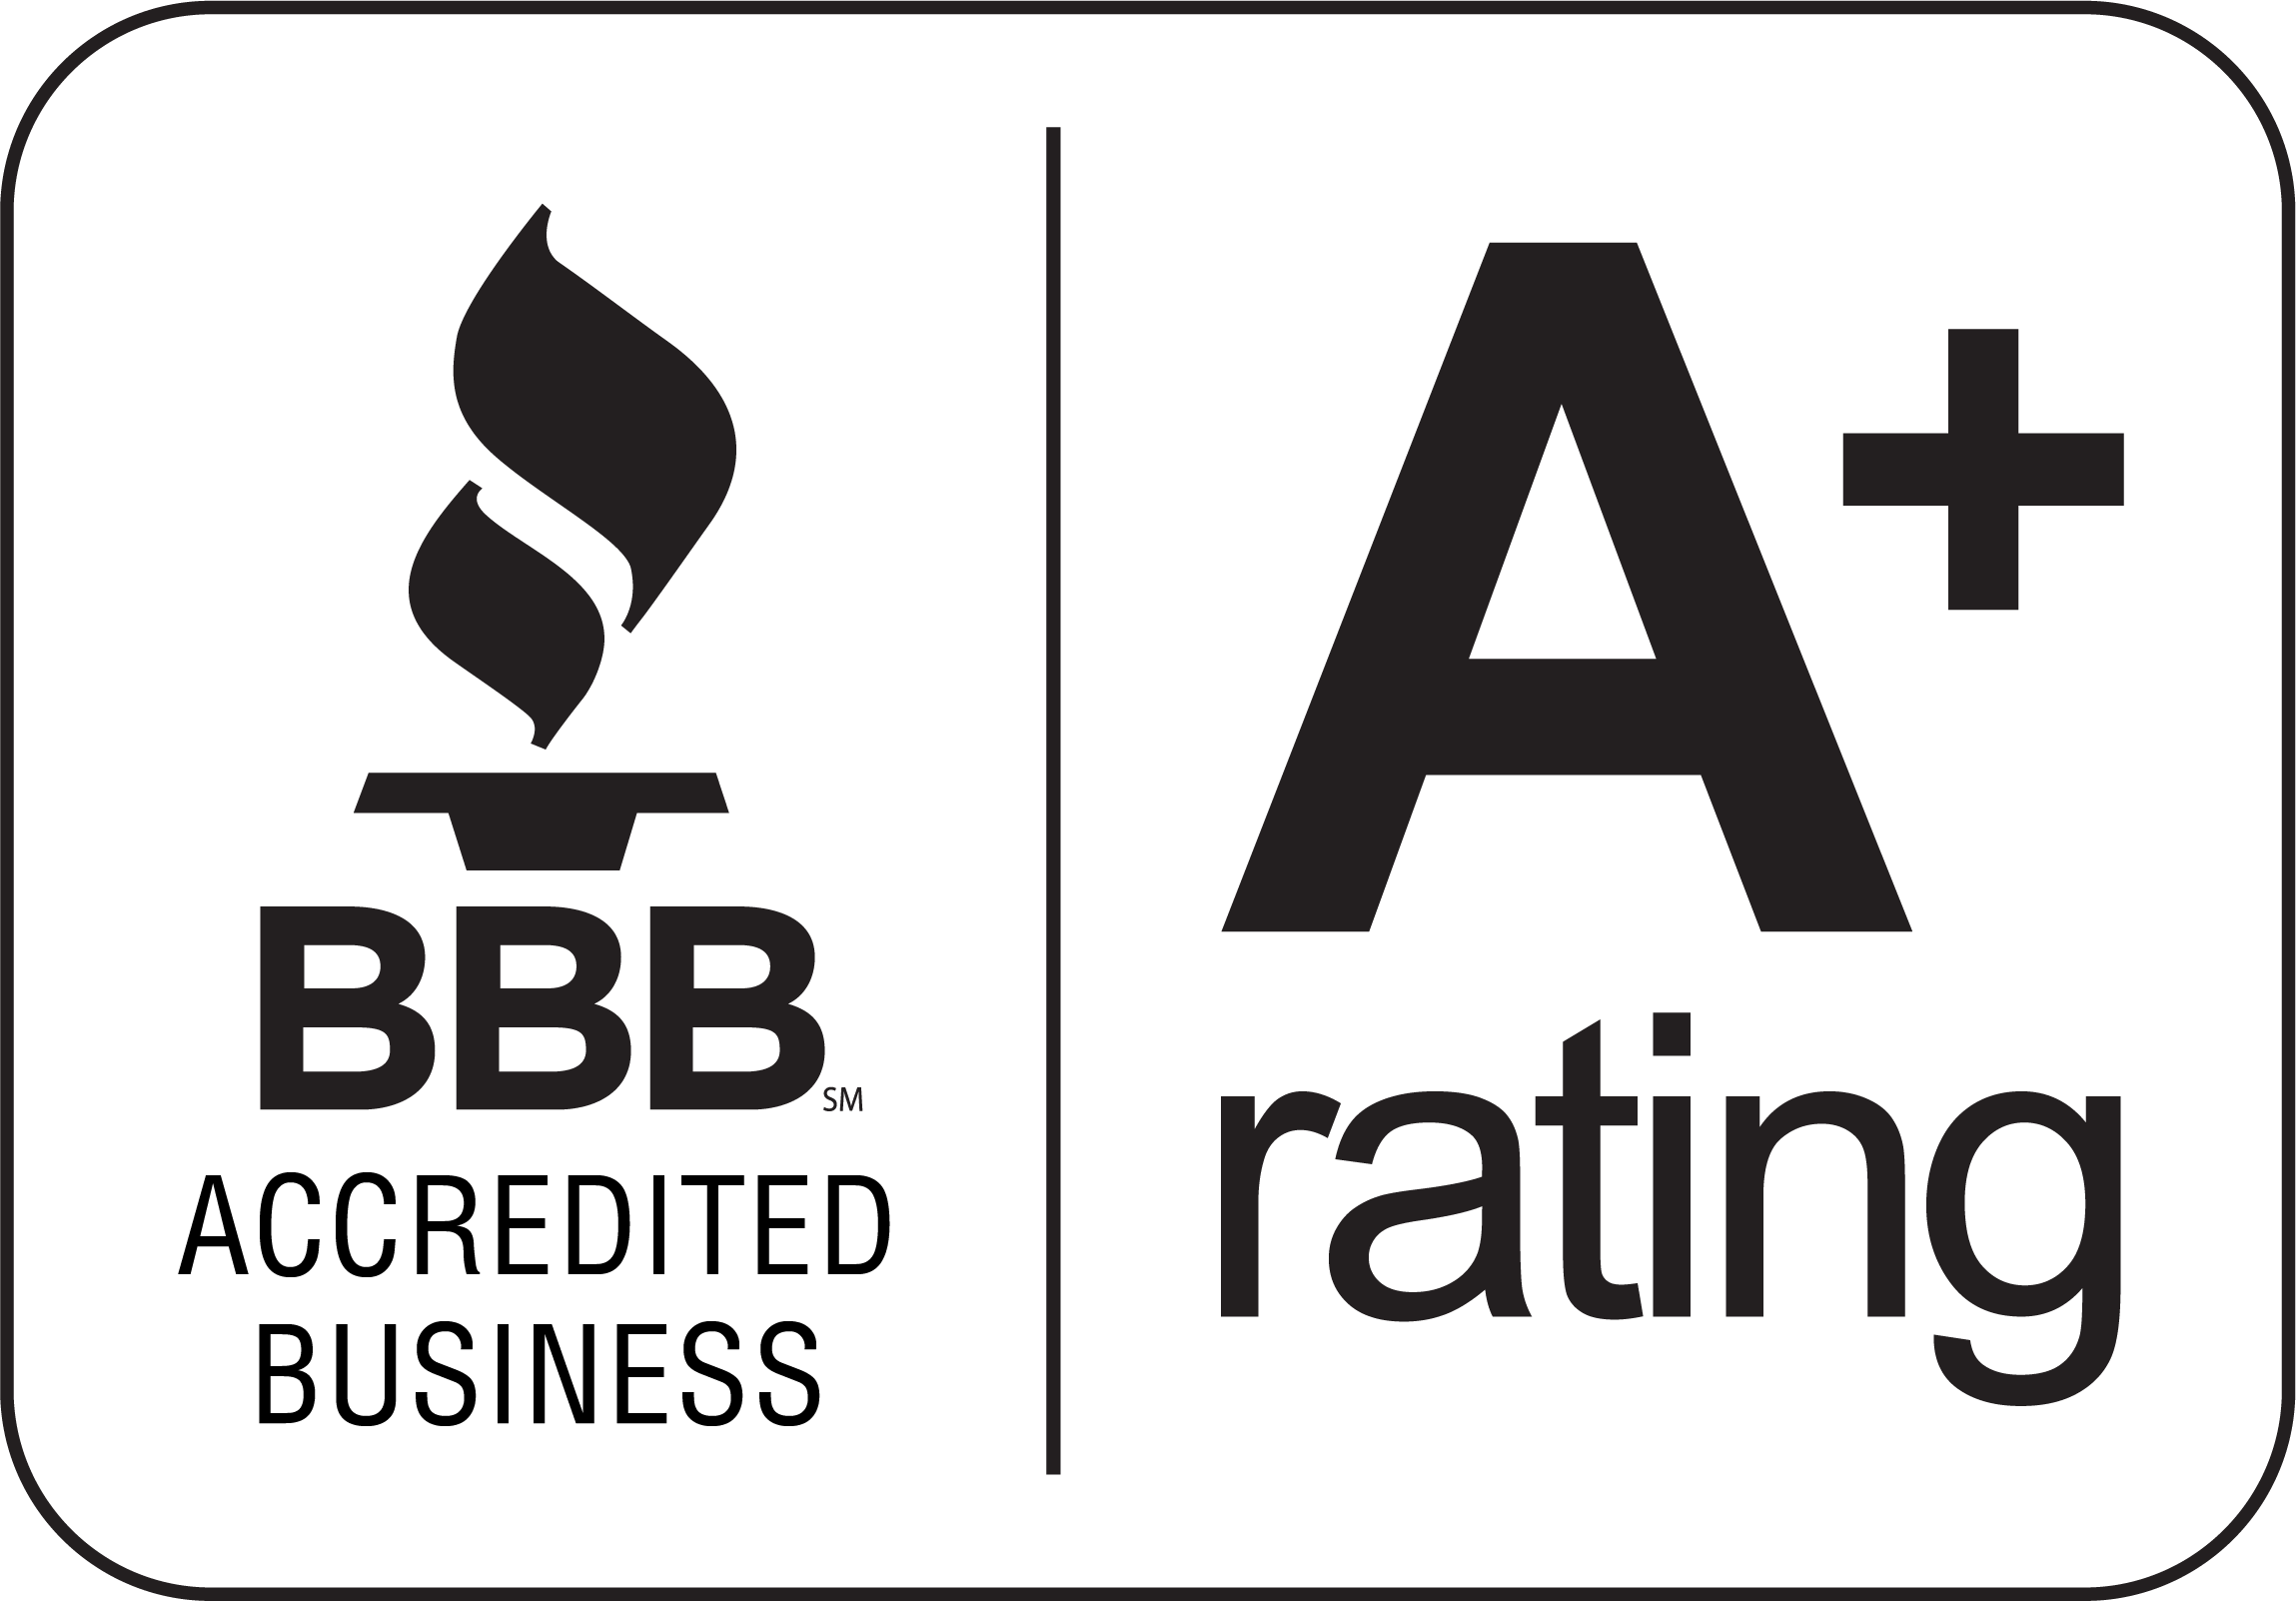 BBB Rating A+ as of 12/8/2016